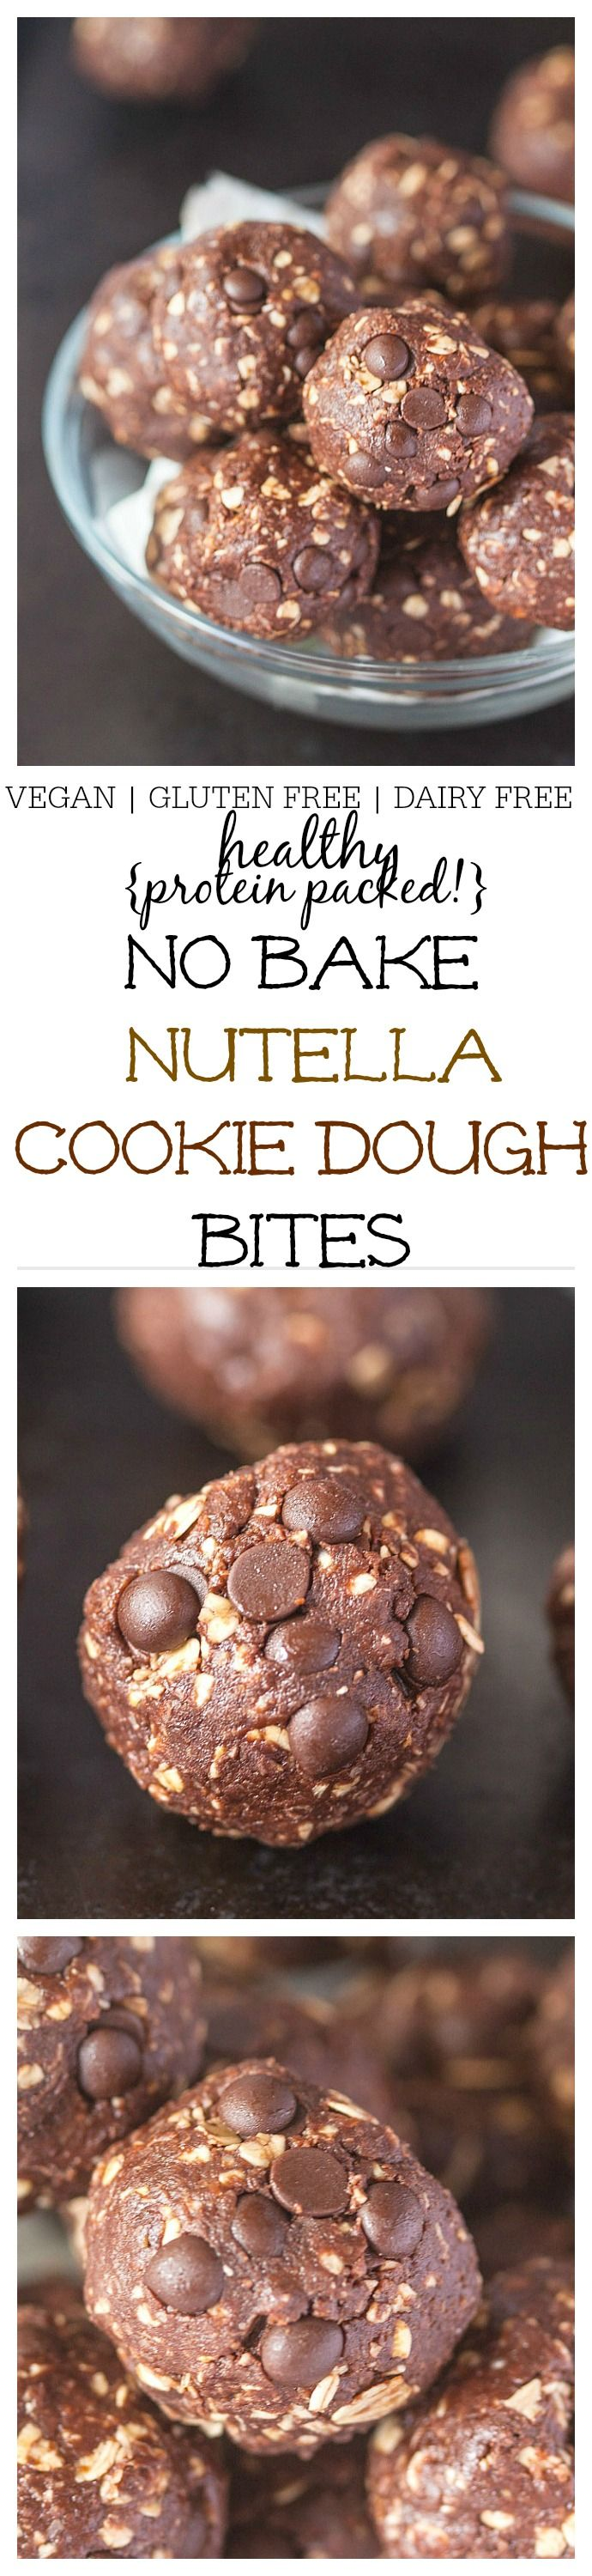 "Healthy {protein packed!} No Bake ""Nutella"" Cookie Dough Bites which are like popable pieces of fudge but so healthy- Ready in 10 and NO REFRIGERATION!"